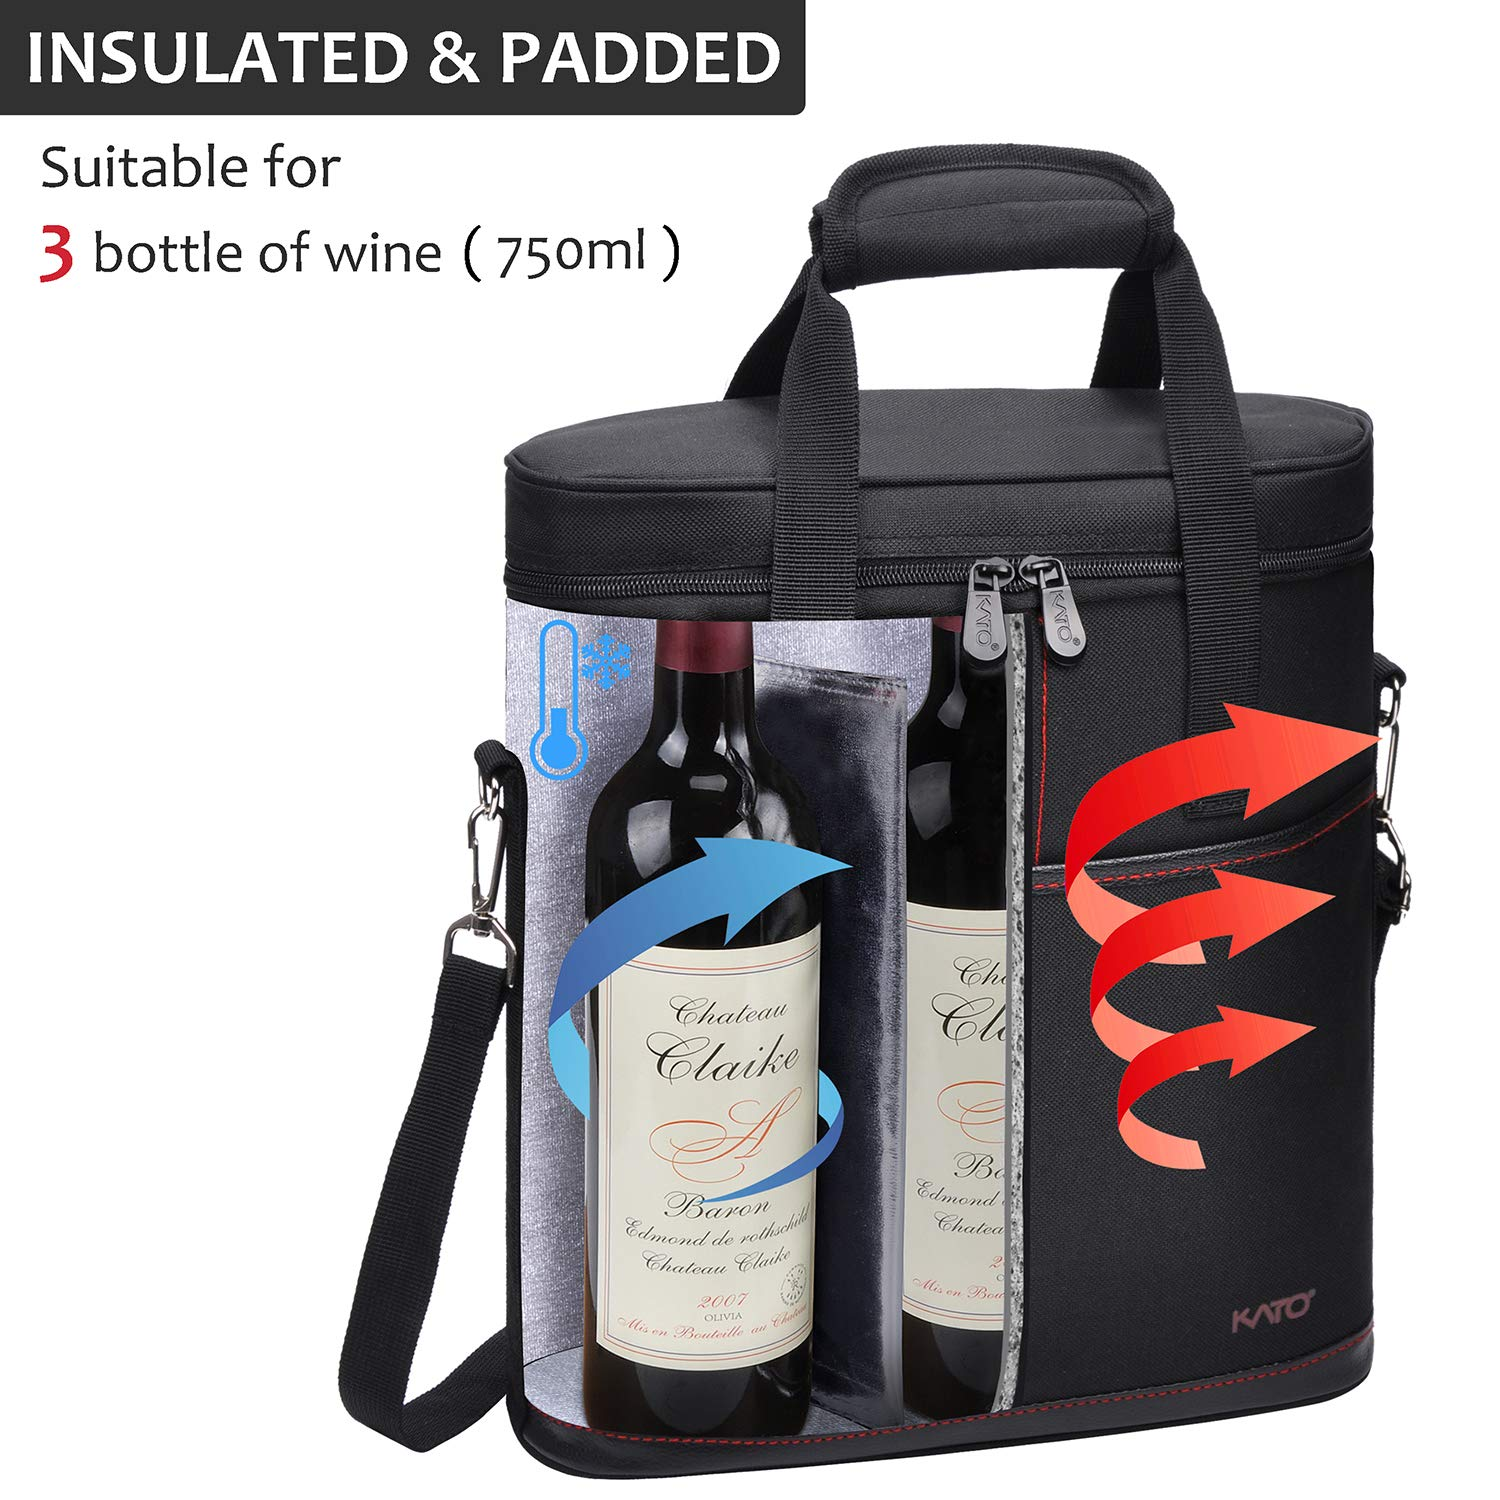 Tirrinia Insulated Wine Carrier - 3 Bottle Travel Padded Wine Carry Cooler Tote Bag with Handle and Adjustable Shoulder Strap + Free Corkscrew, Black by Tirrinia (Image #2)